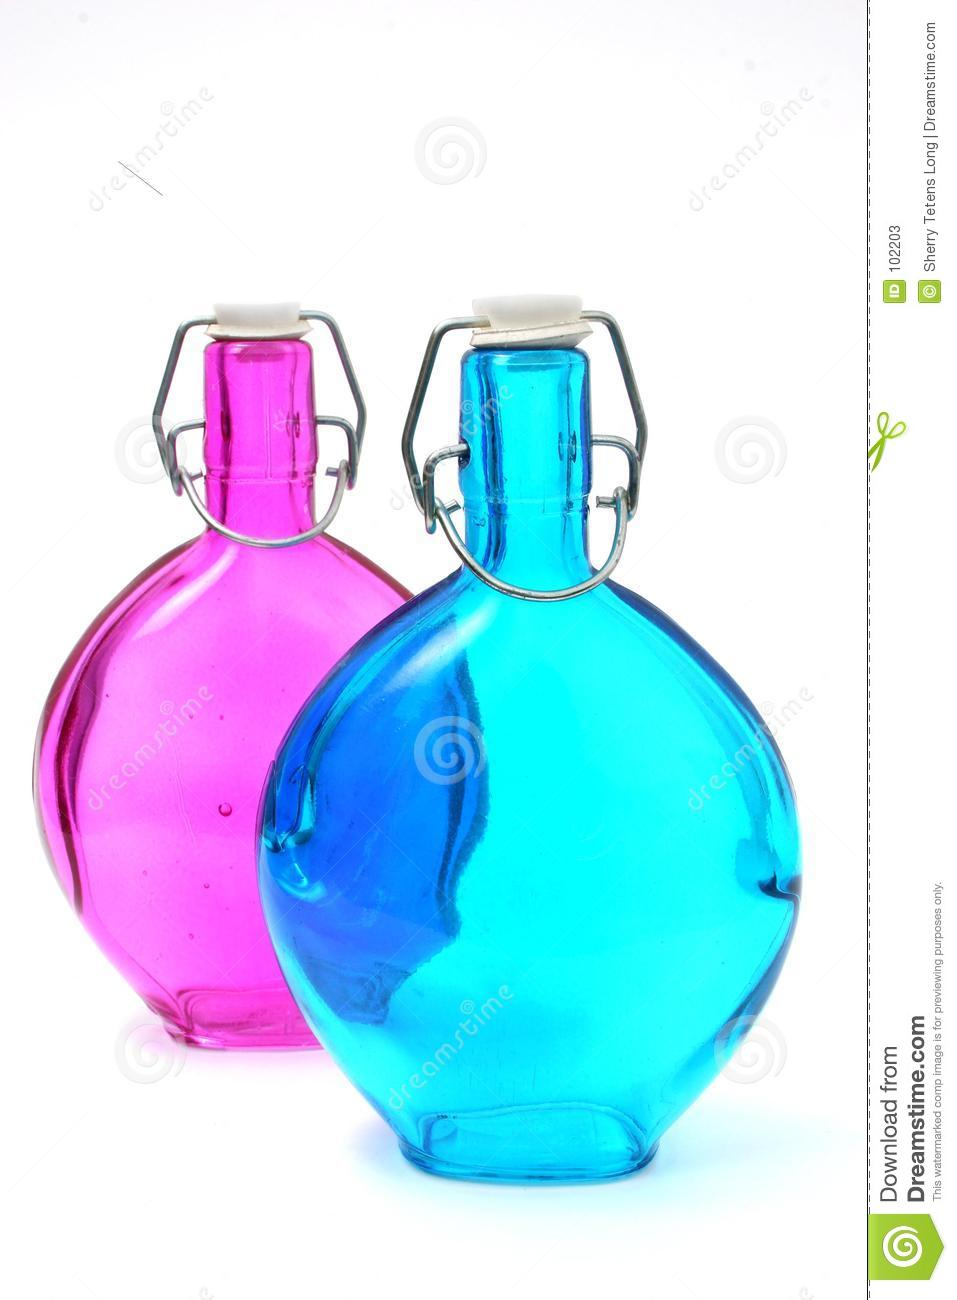 Blue and Pink Antique Bottles